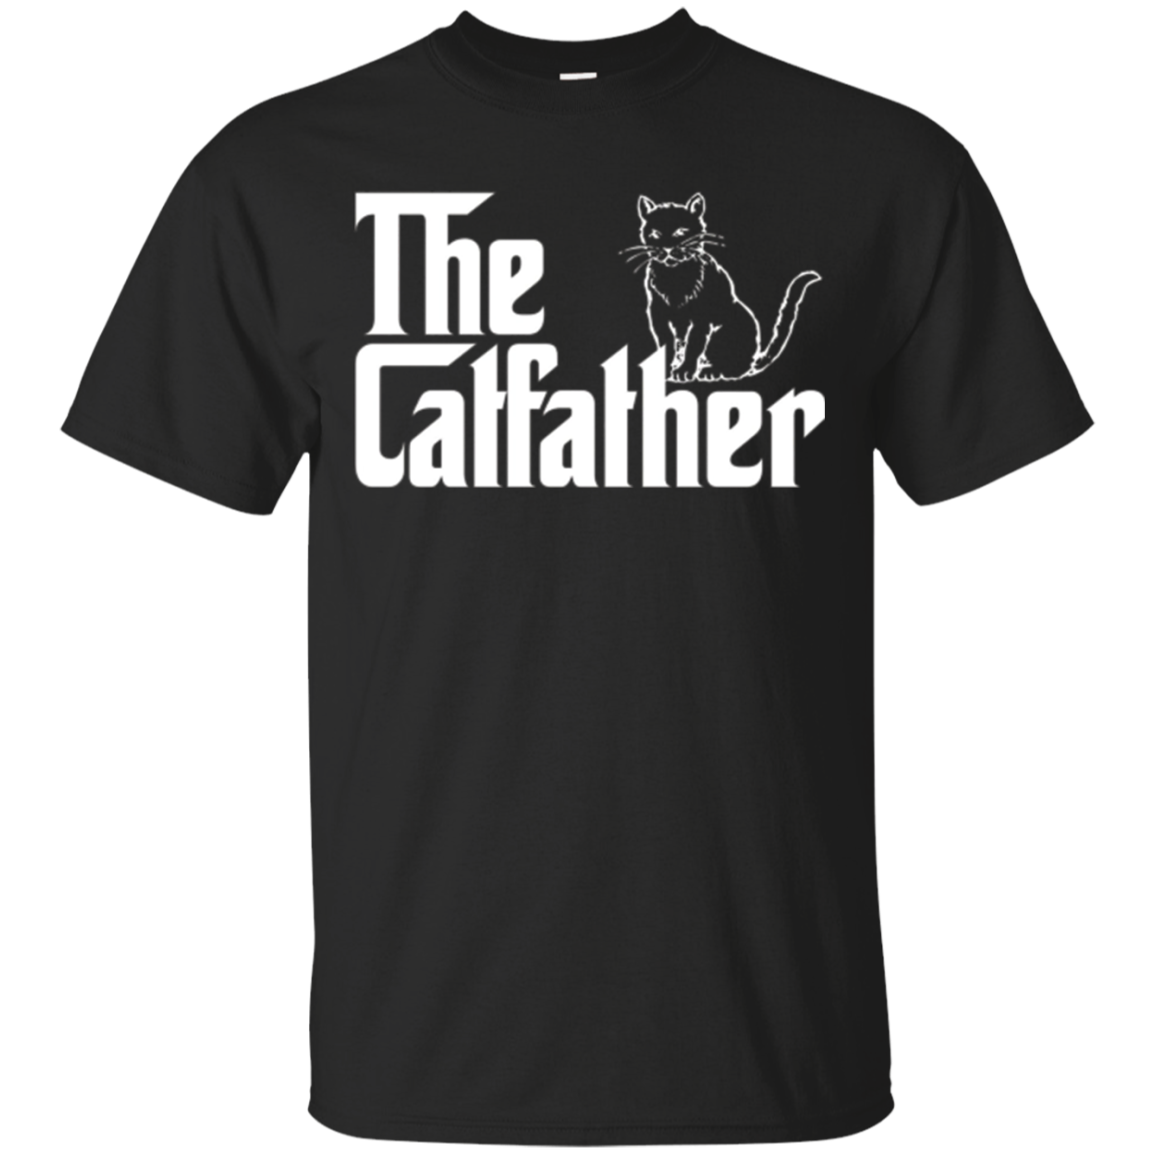 The Catfather T-Shirt | Funny Cat Lover T-Shirts